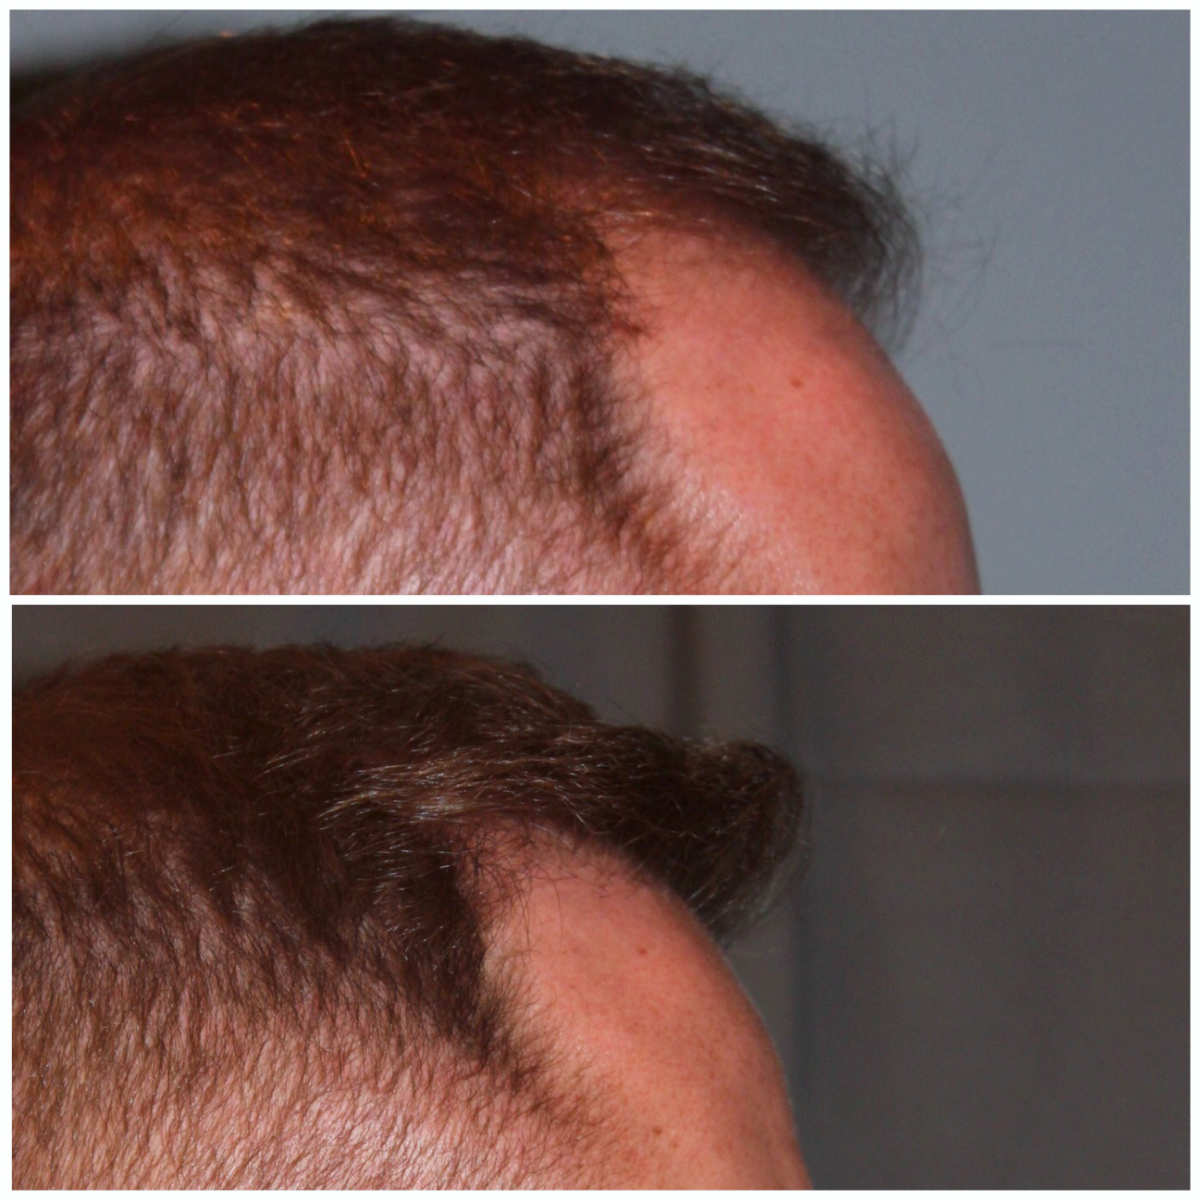 34 year old male 7 months post 2000 graft frontal hairline hair transplant. About 60% regrowth of what he will have at 18 months.